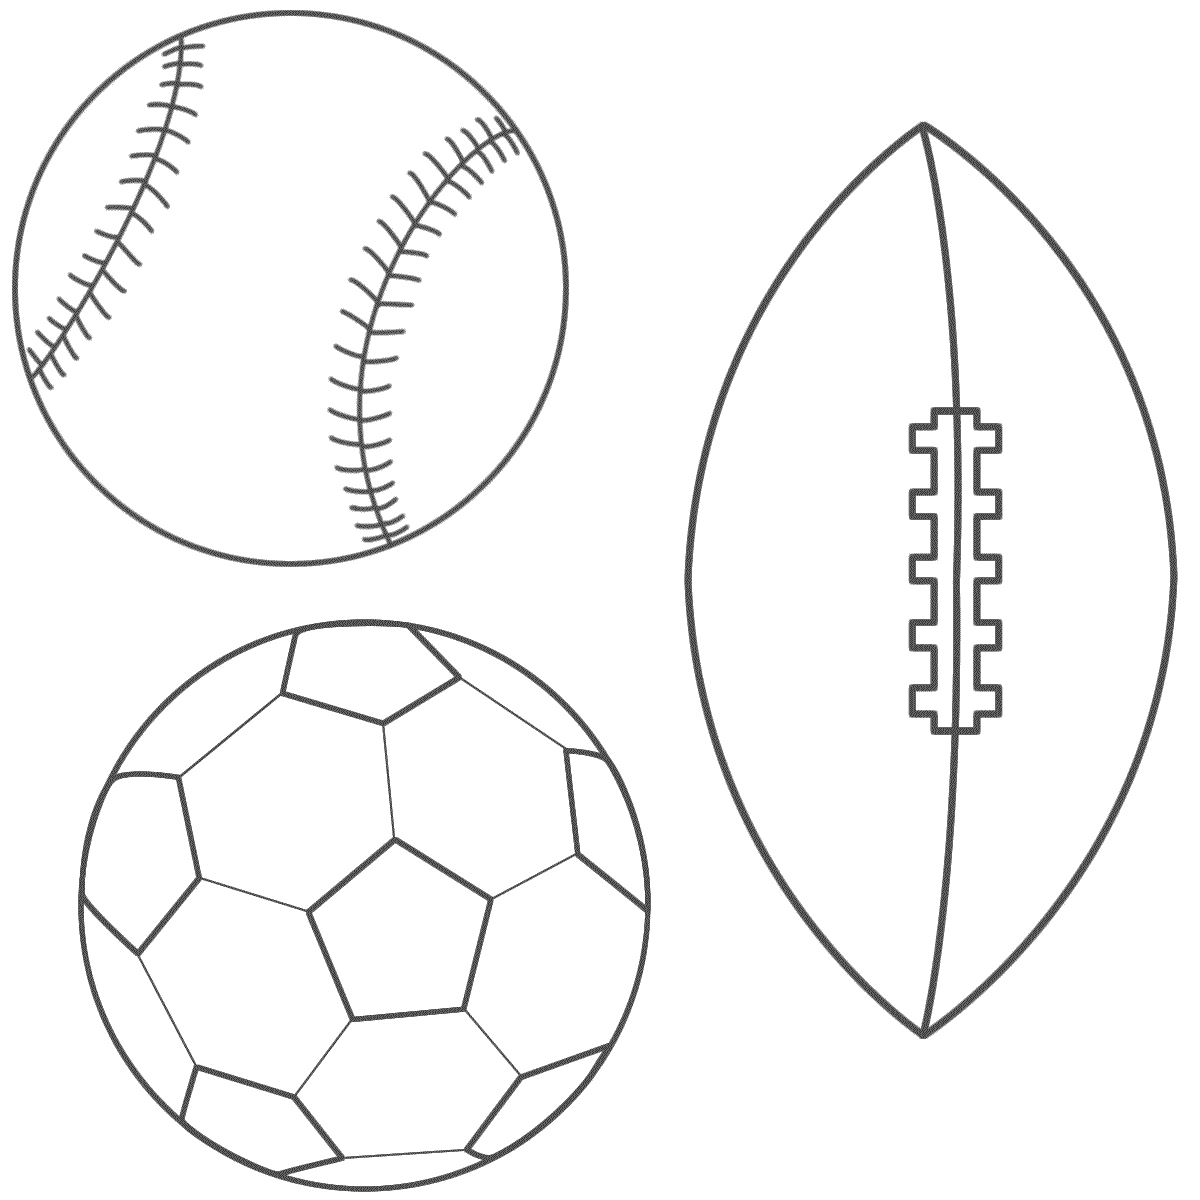 coloring page birthdays pinterest soccer ball and craft